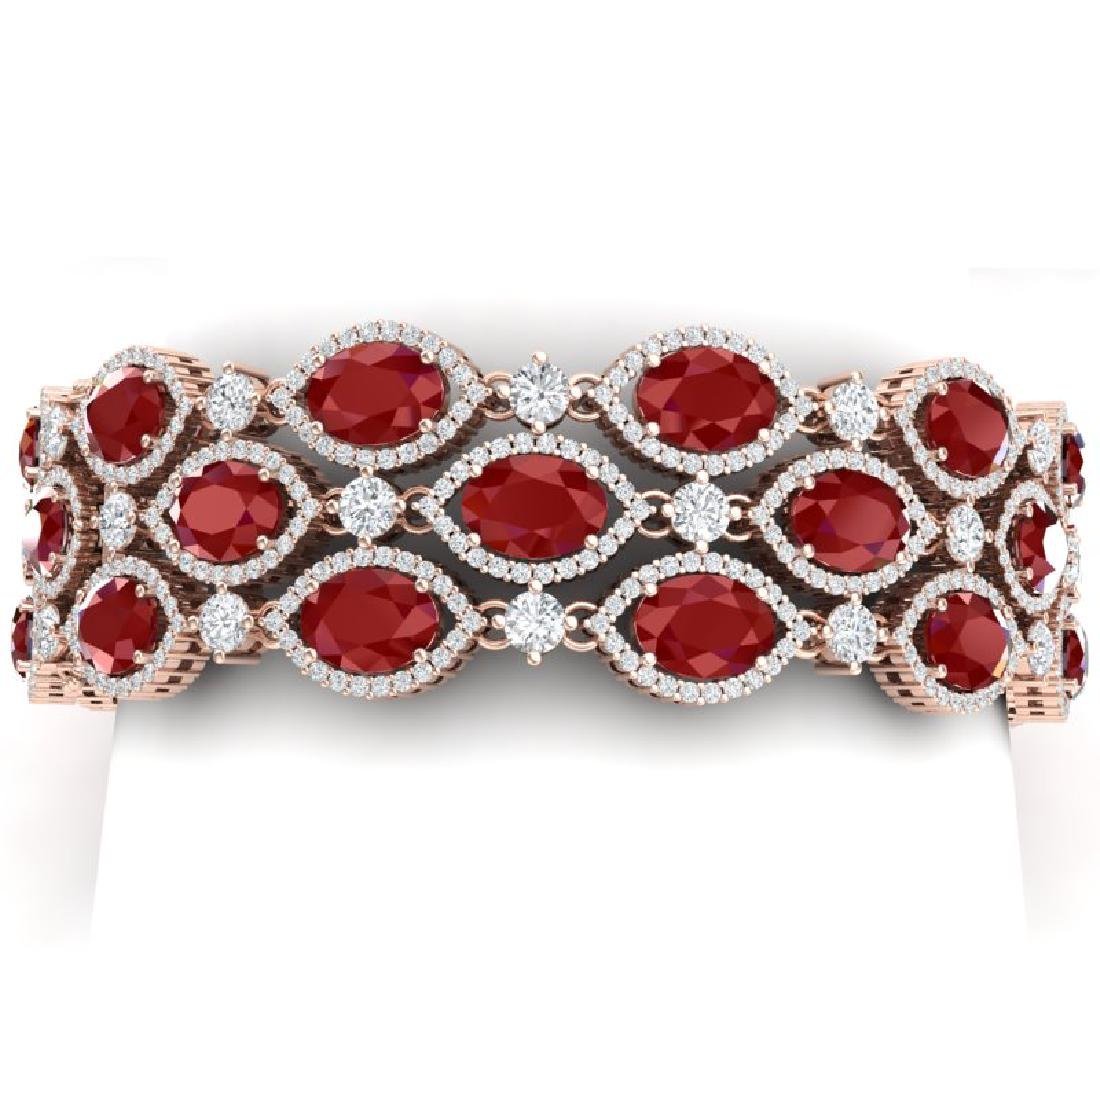 47.84 CTW Royalty Ruby & VS Diamond Bracelet 18K Rose